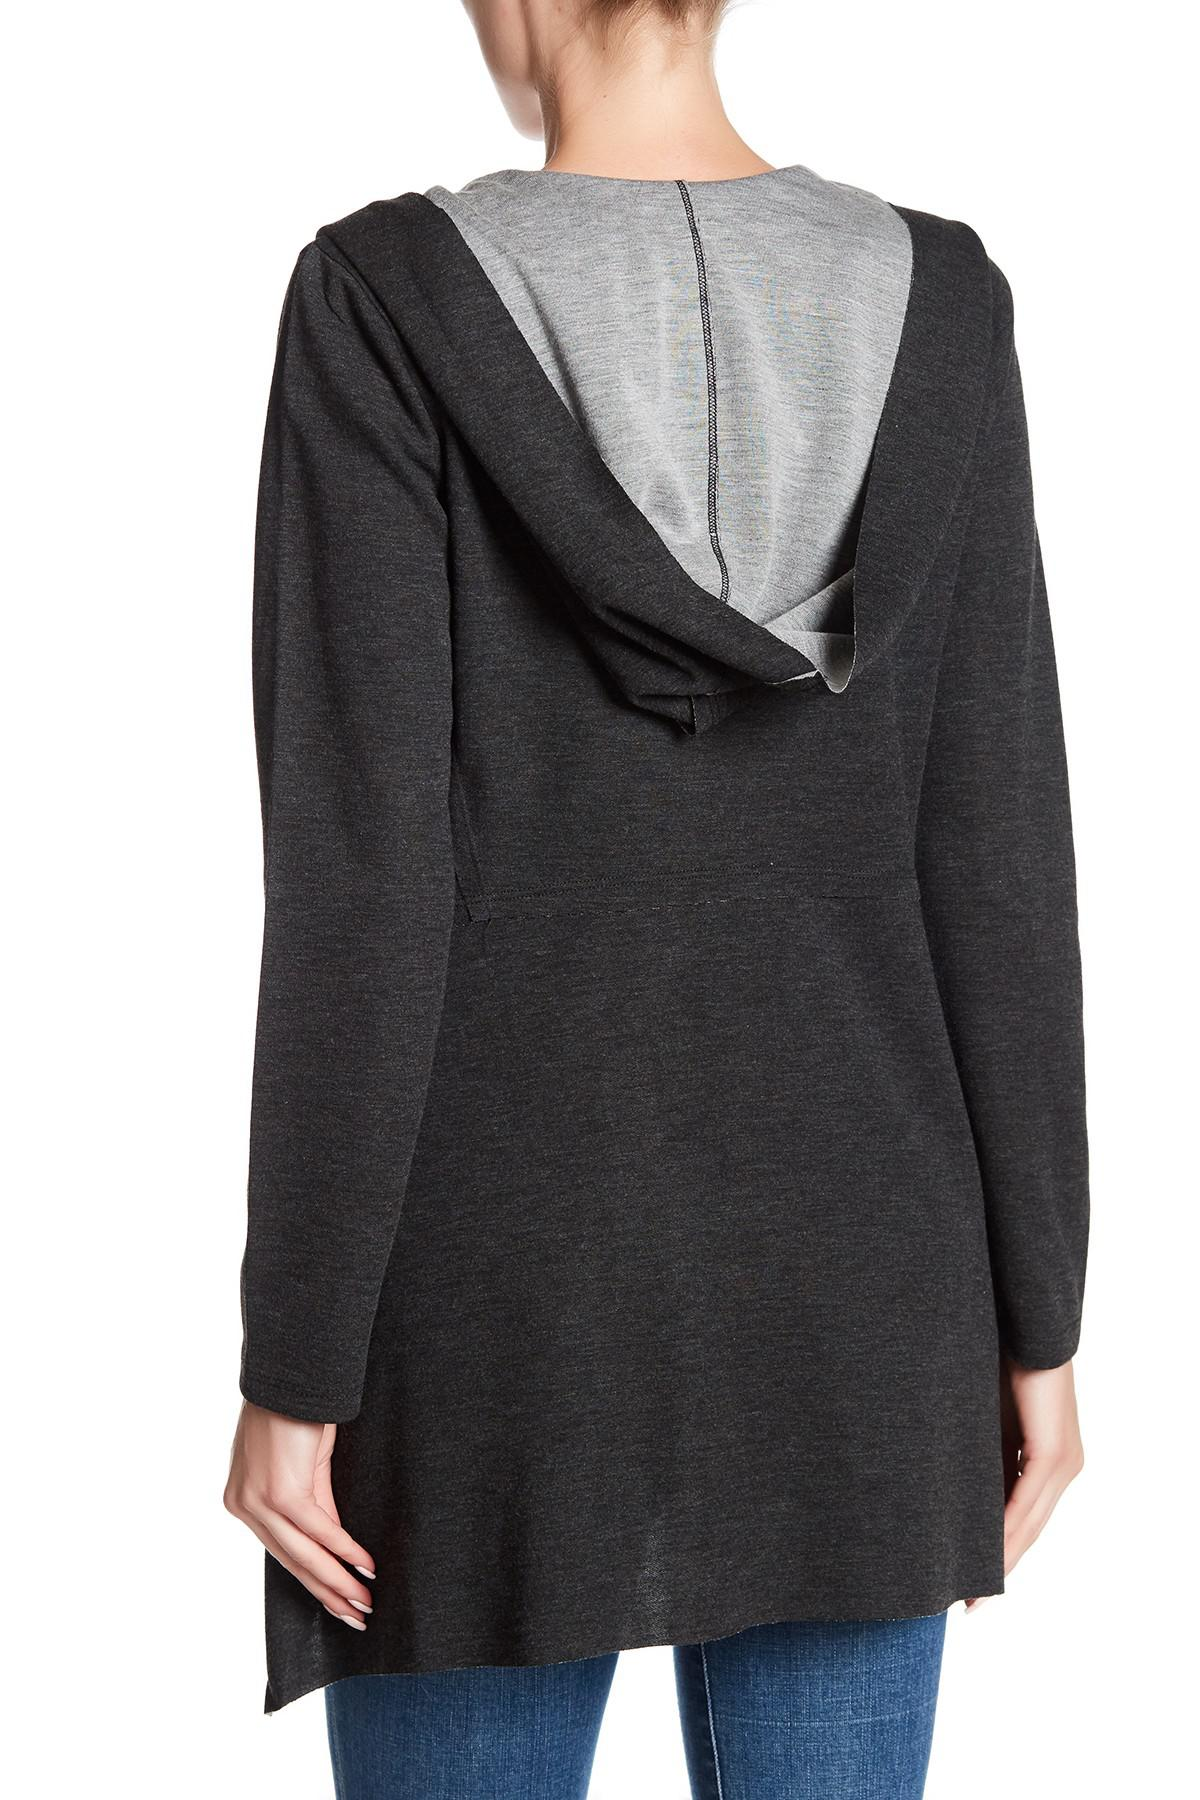 Cable & gauge Open Front Hooded Cardigan   Lyst